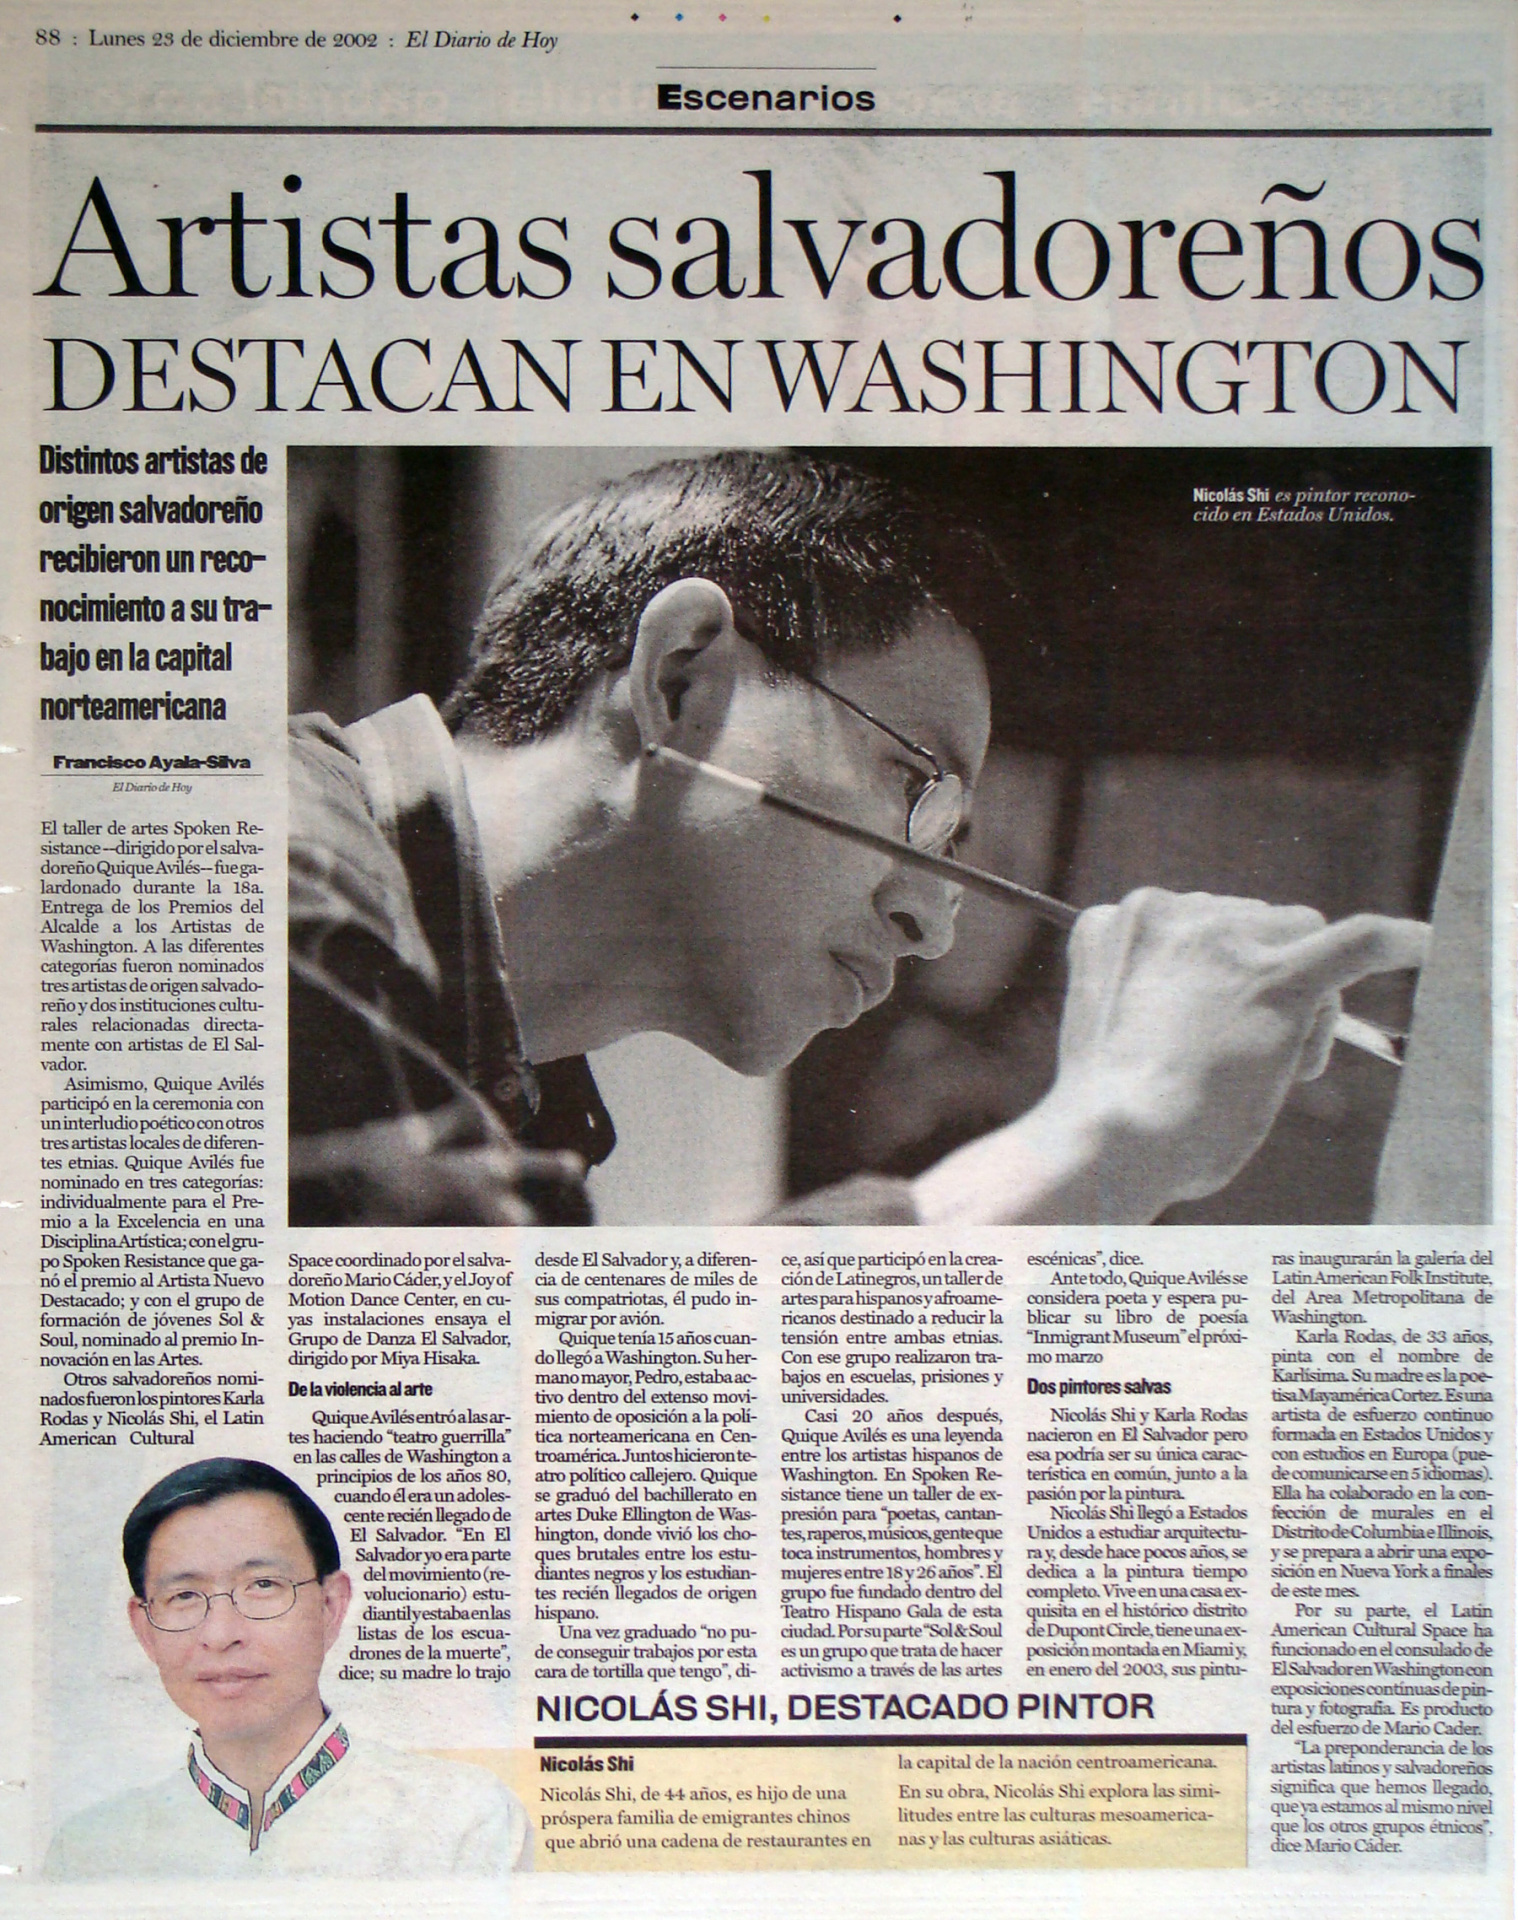 Artistas salvadorenos destacan en Washington